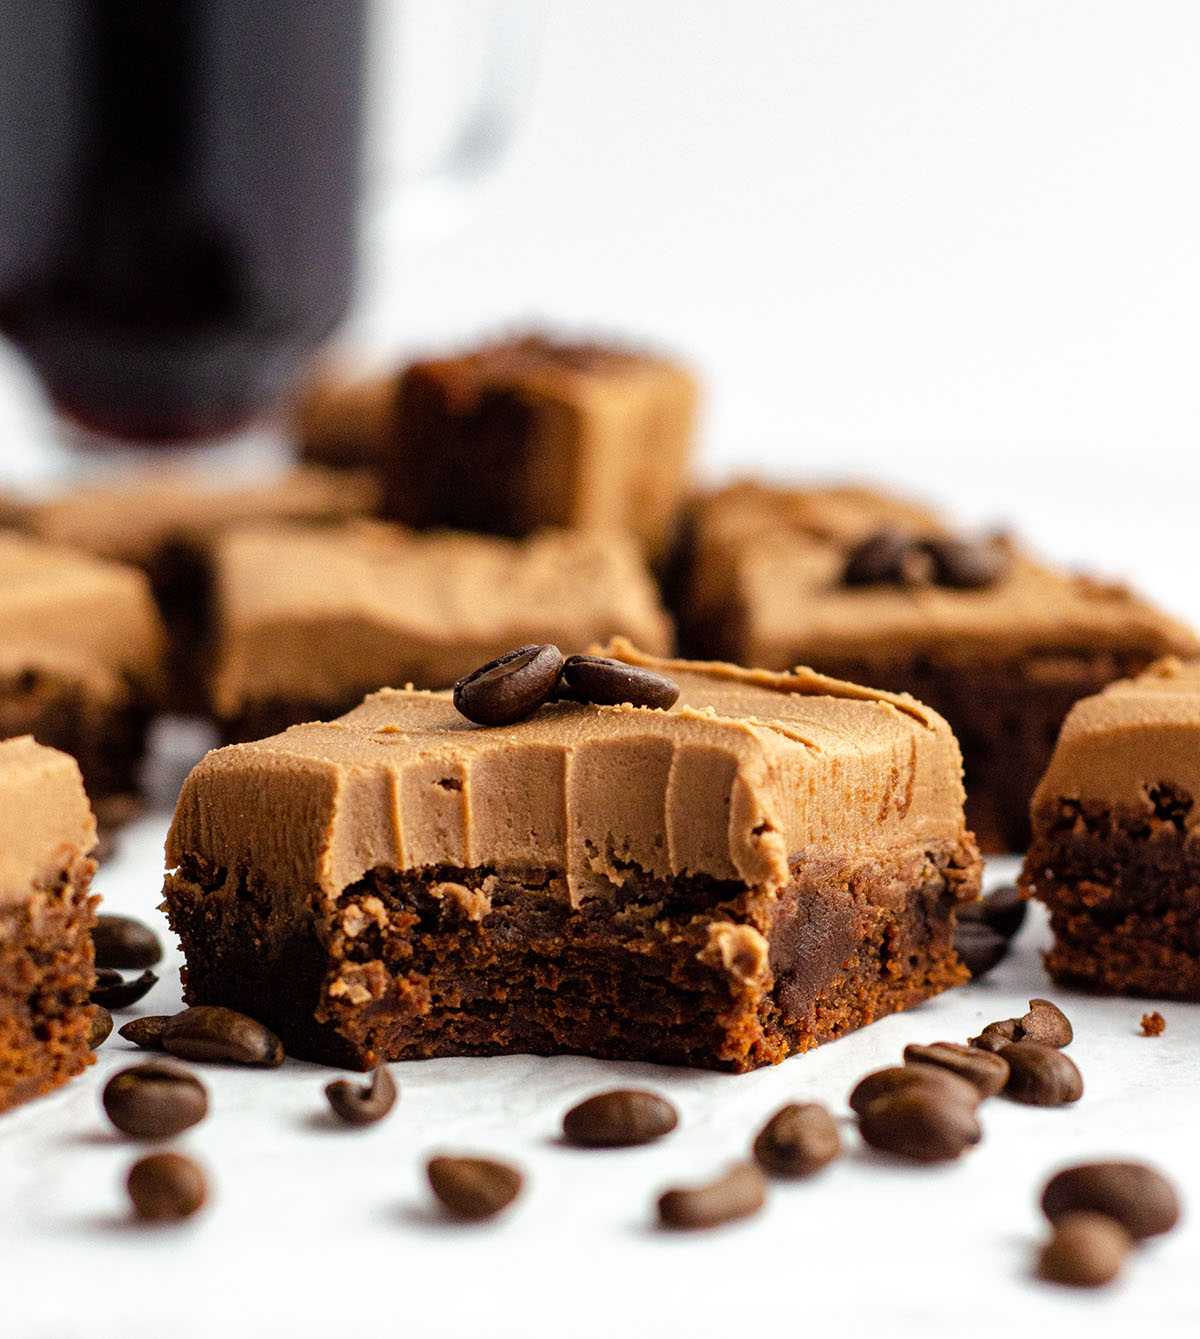 coffee brownie with mocha frosting with a bite taken out of it